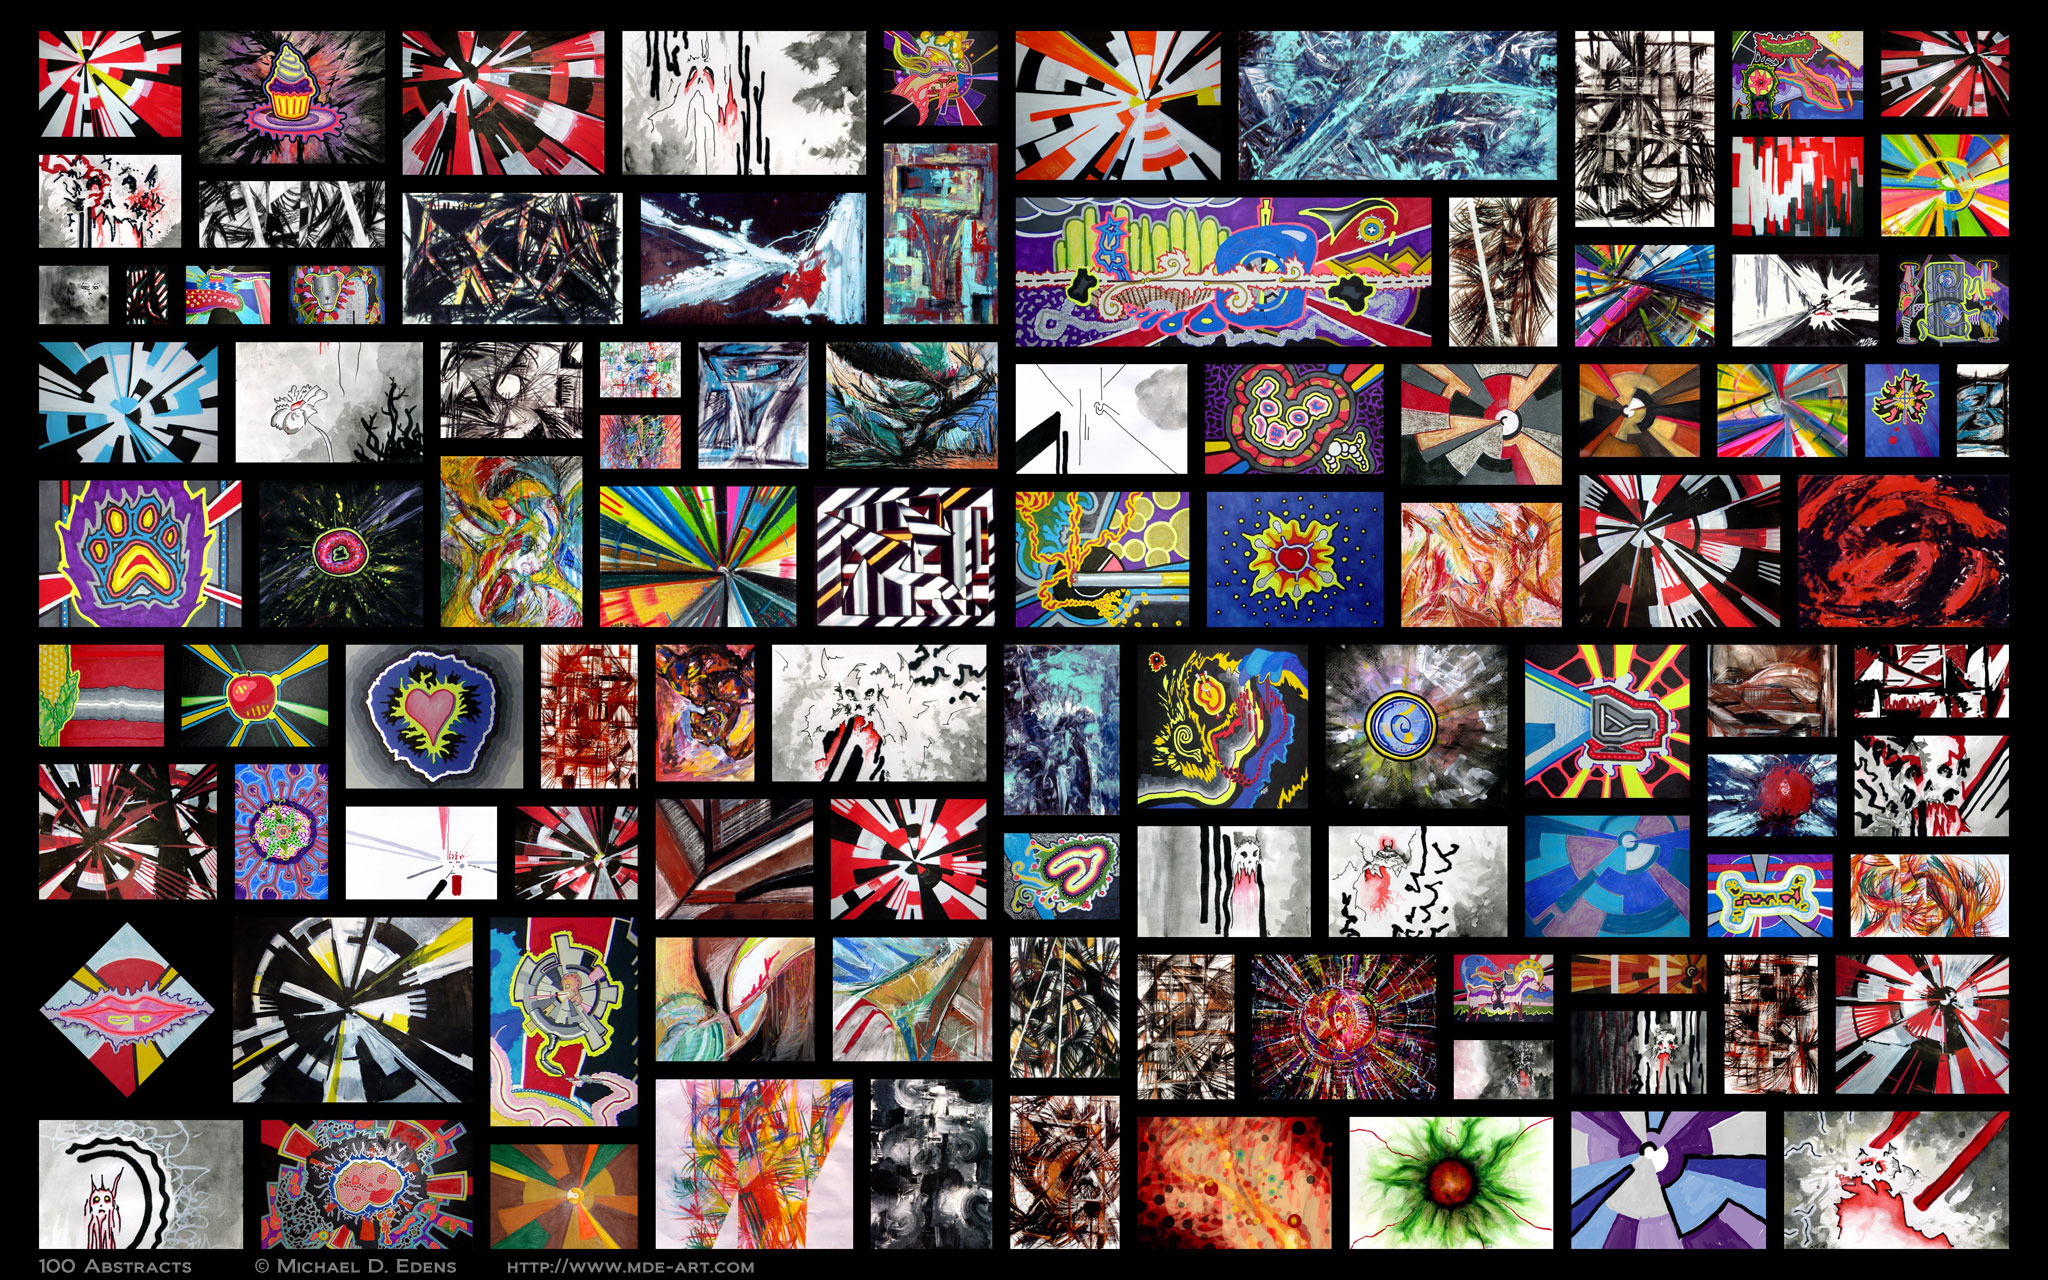 100 Abstracts - Collage of Artwork by Michael D. Edens